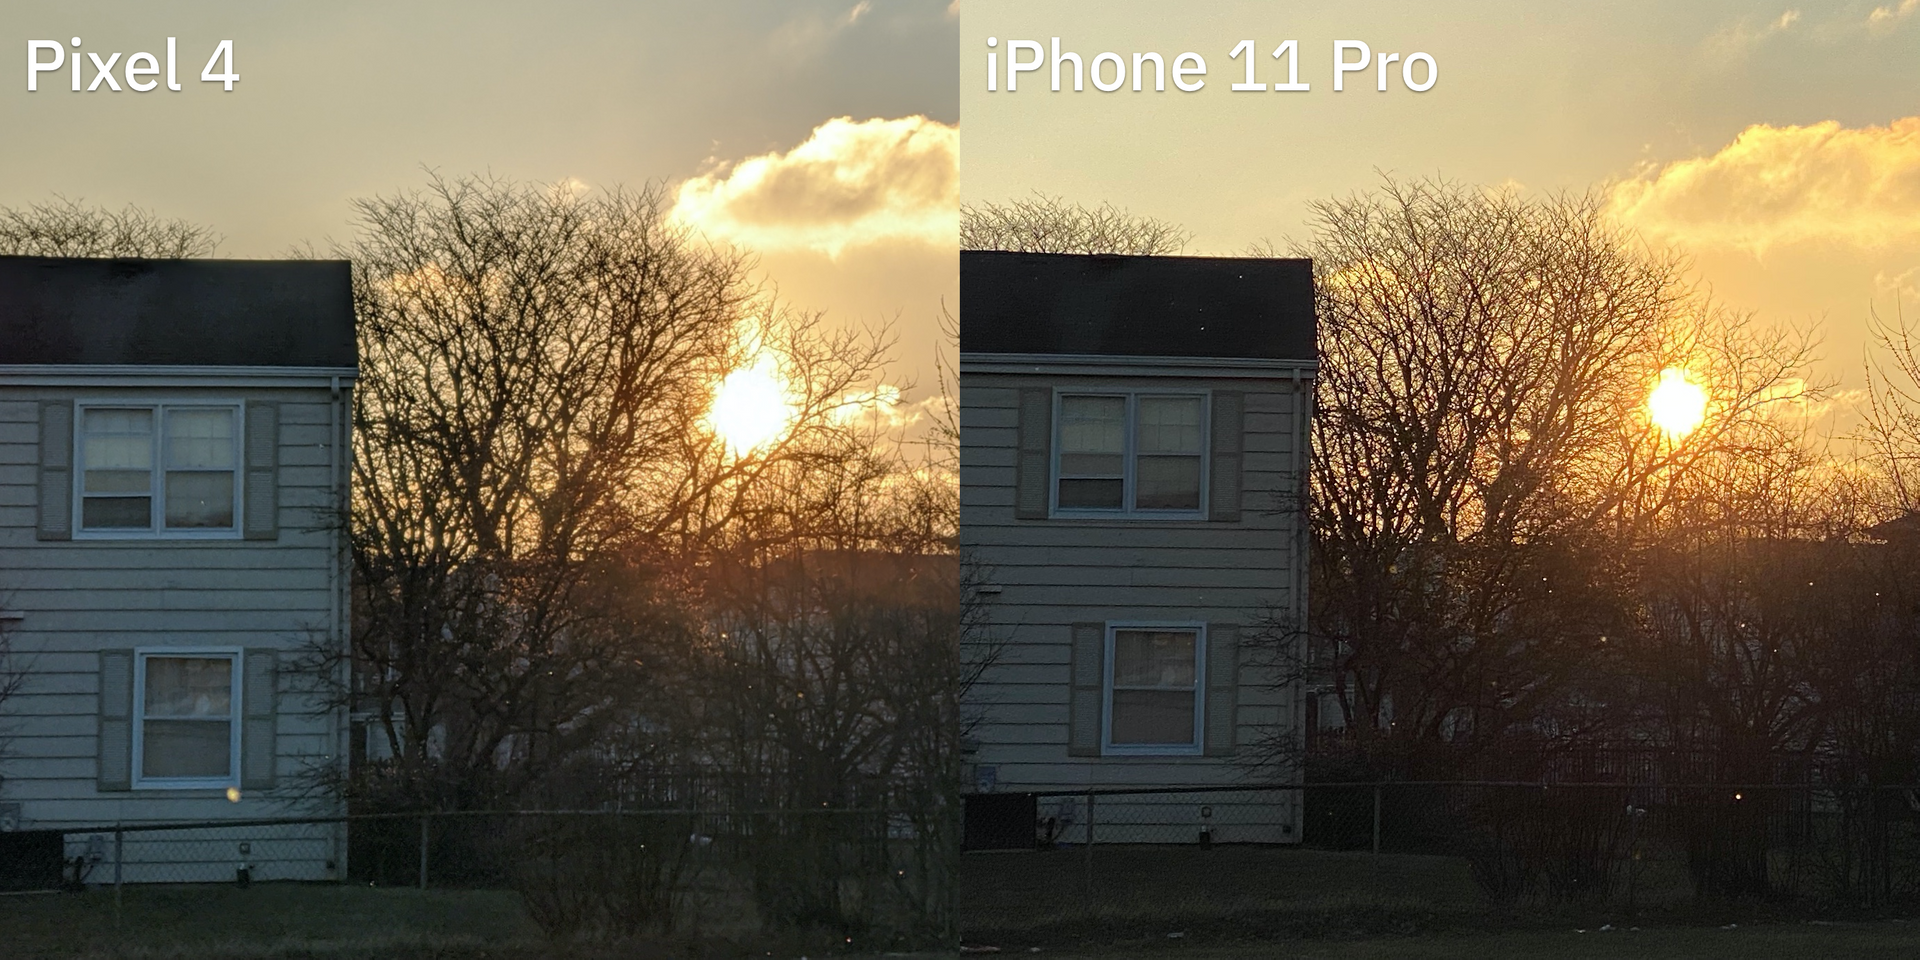 Dynamic Range, Telephoto, and the iPhone 11 Pro & Pixel 4